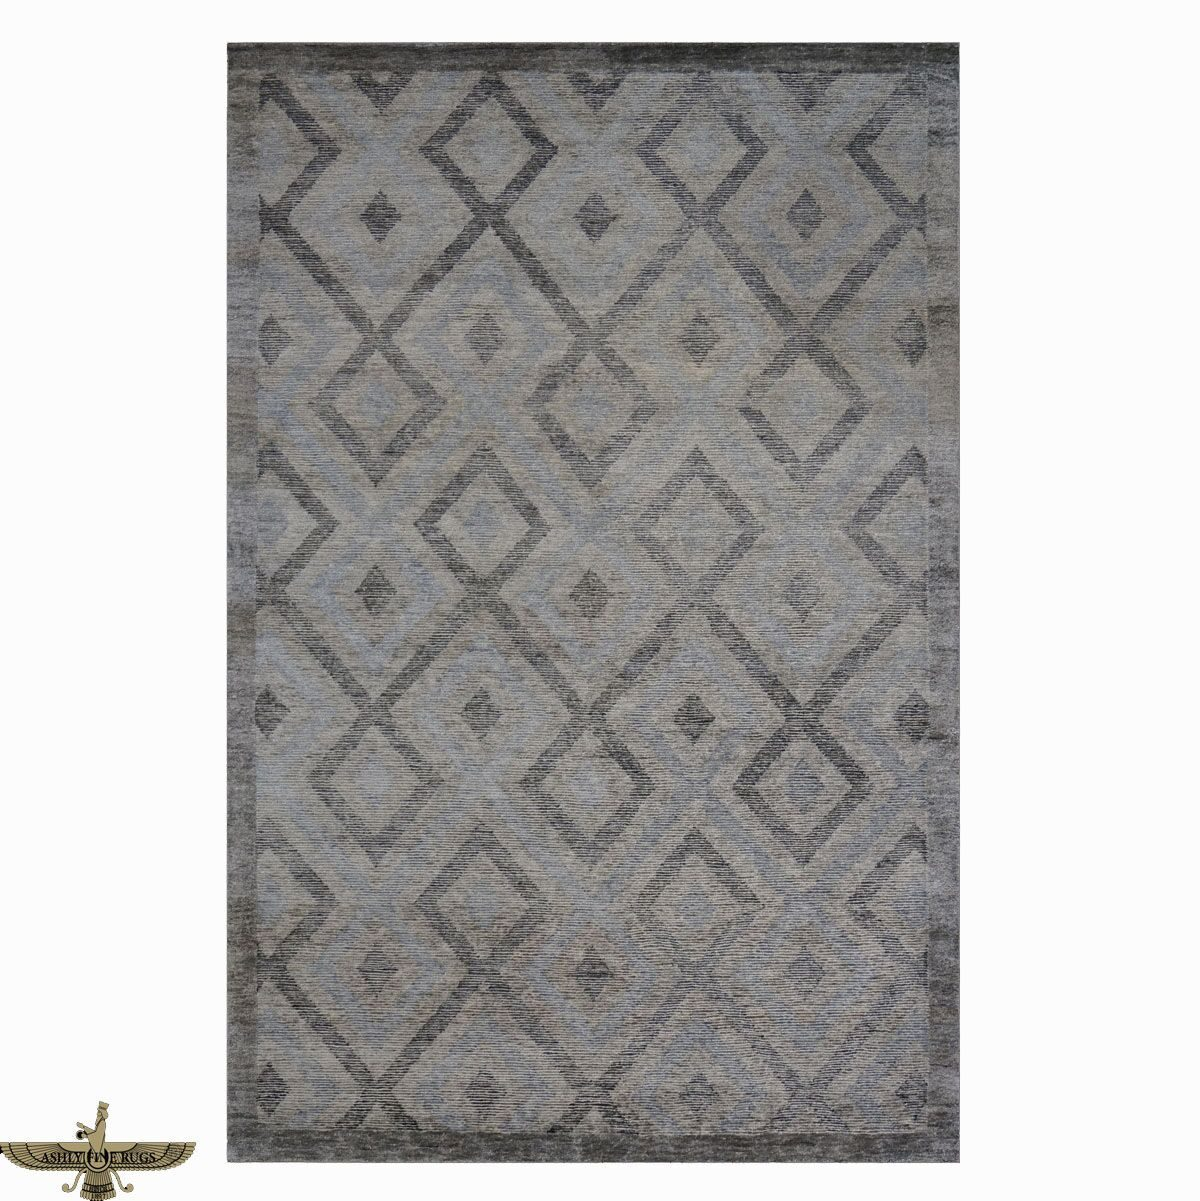 Area rugs available from Ashly Fine Rugs. This 6 x 9 handmade modern wool and silk rug is made in India feauring a geometric gray pattern.